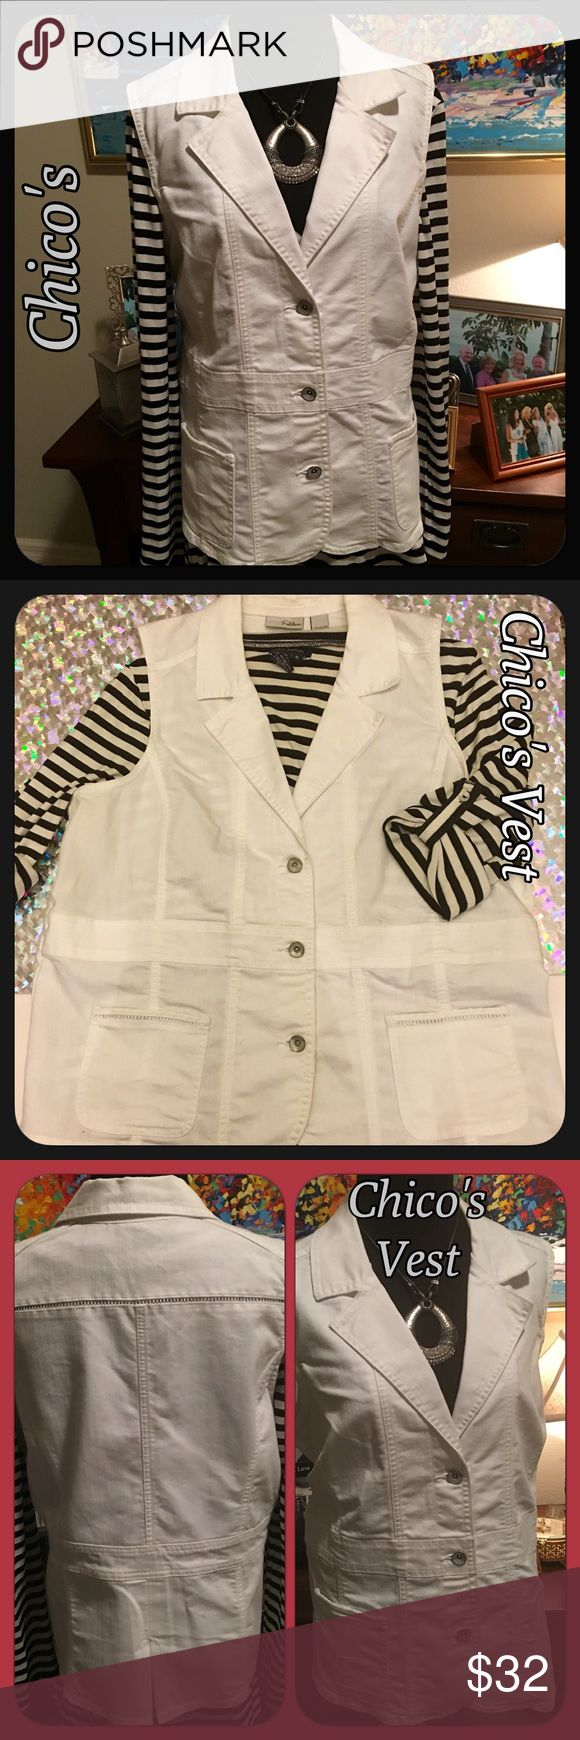 🌷Chico's Button Up White Jean Vest Sz 16 Chico's really cute white Jean vest. Chico's size 3, which is a 16. 2 front pockets.!Look at pic 4 for cute detailing on vest! Lots of different looks you could have with this! Like new condition! No flaws! 71% Cotton 29% Elasterell Chico's Jackets & Coats Vests